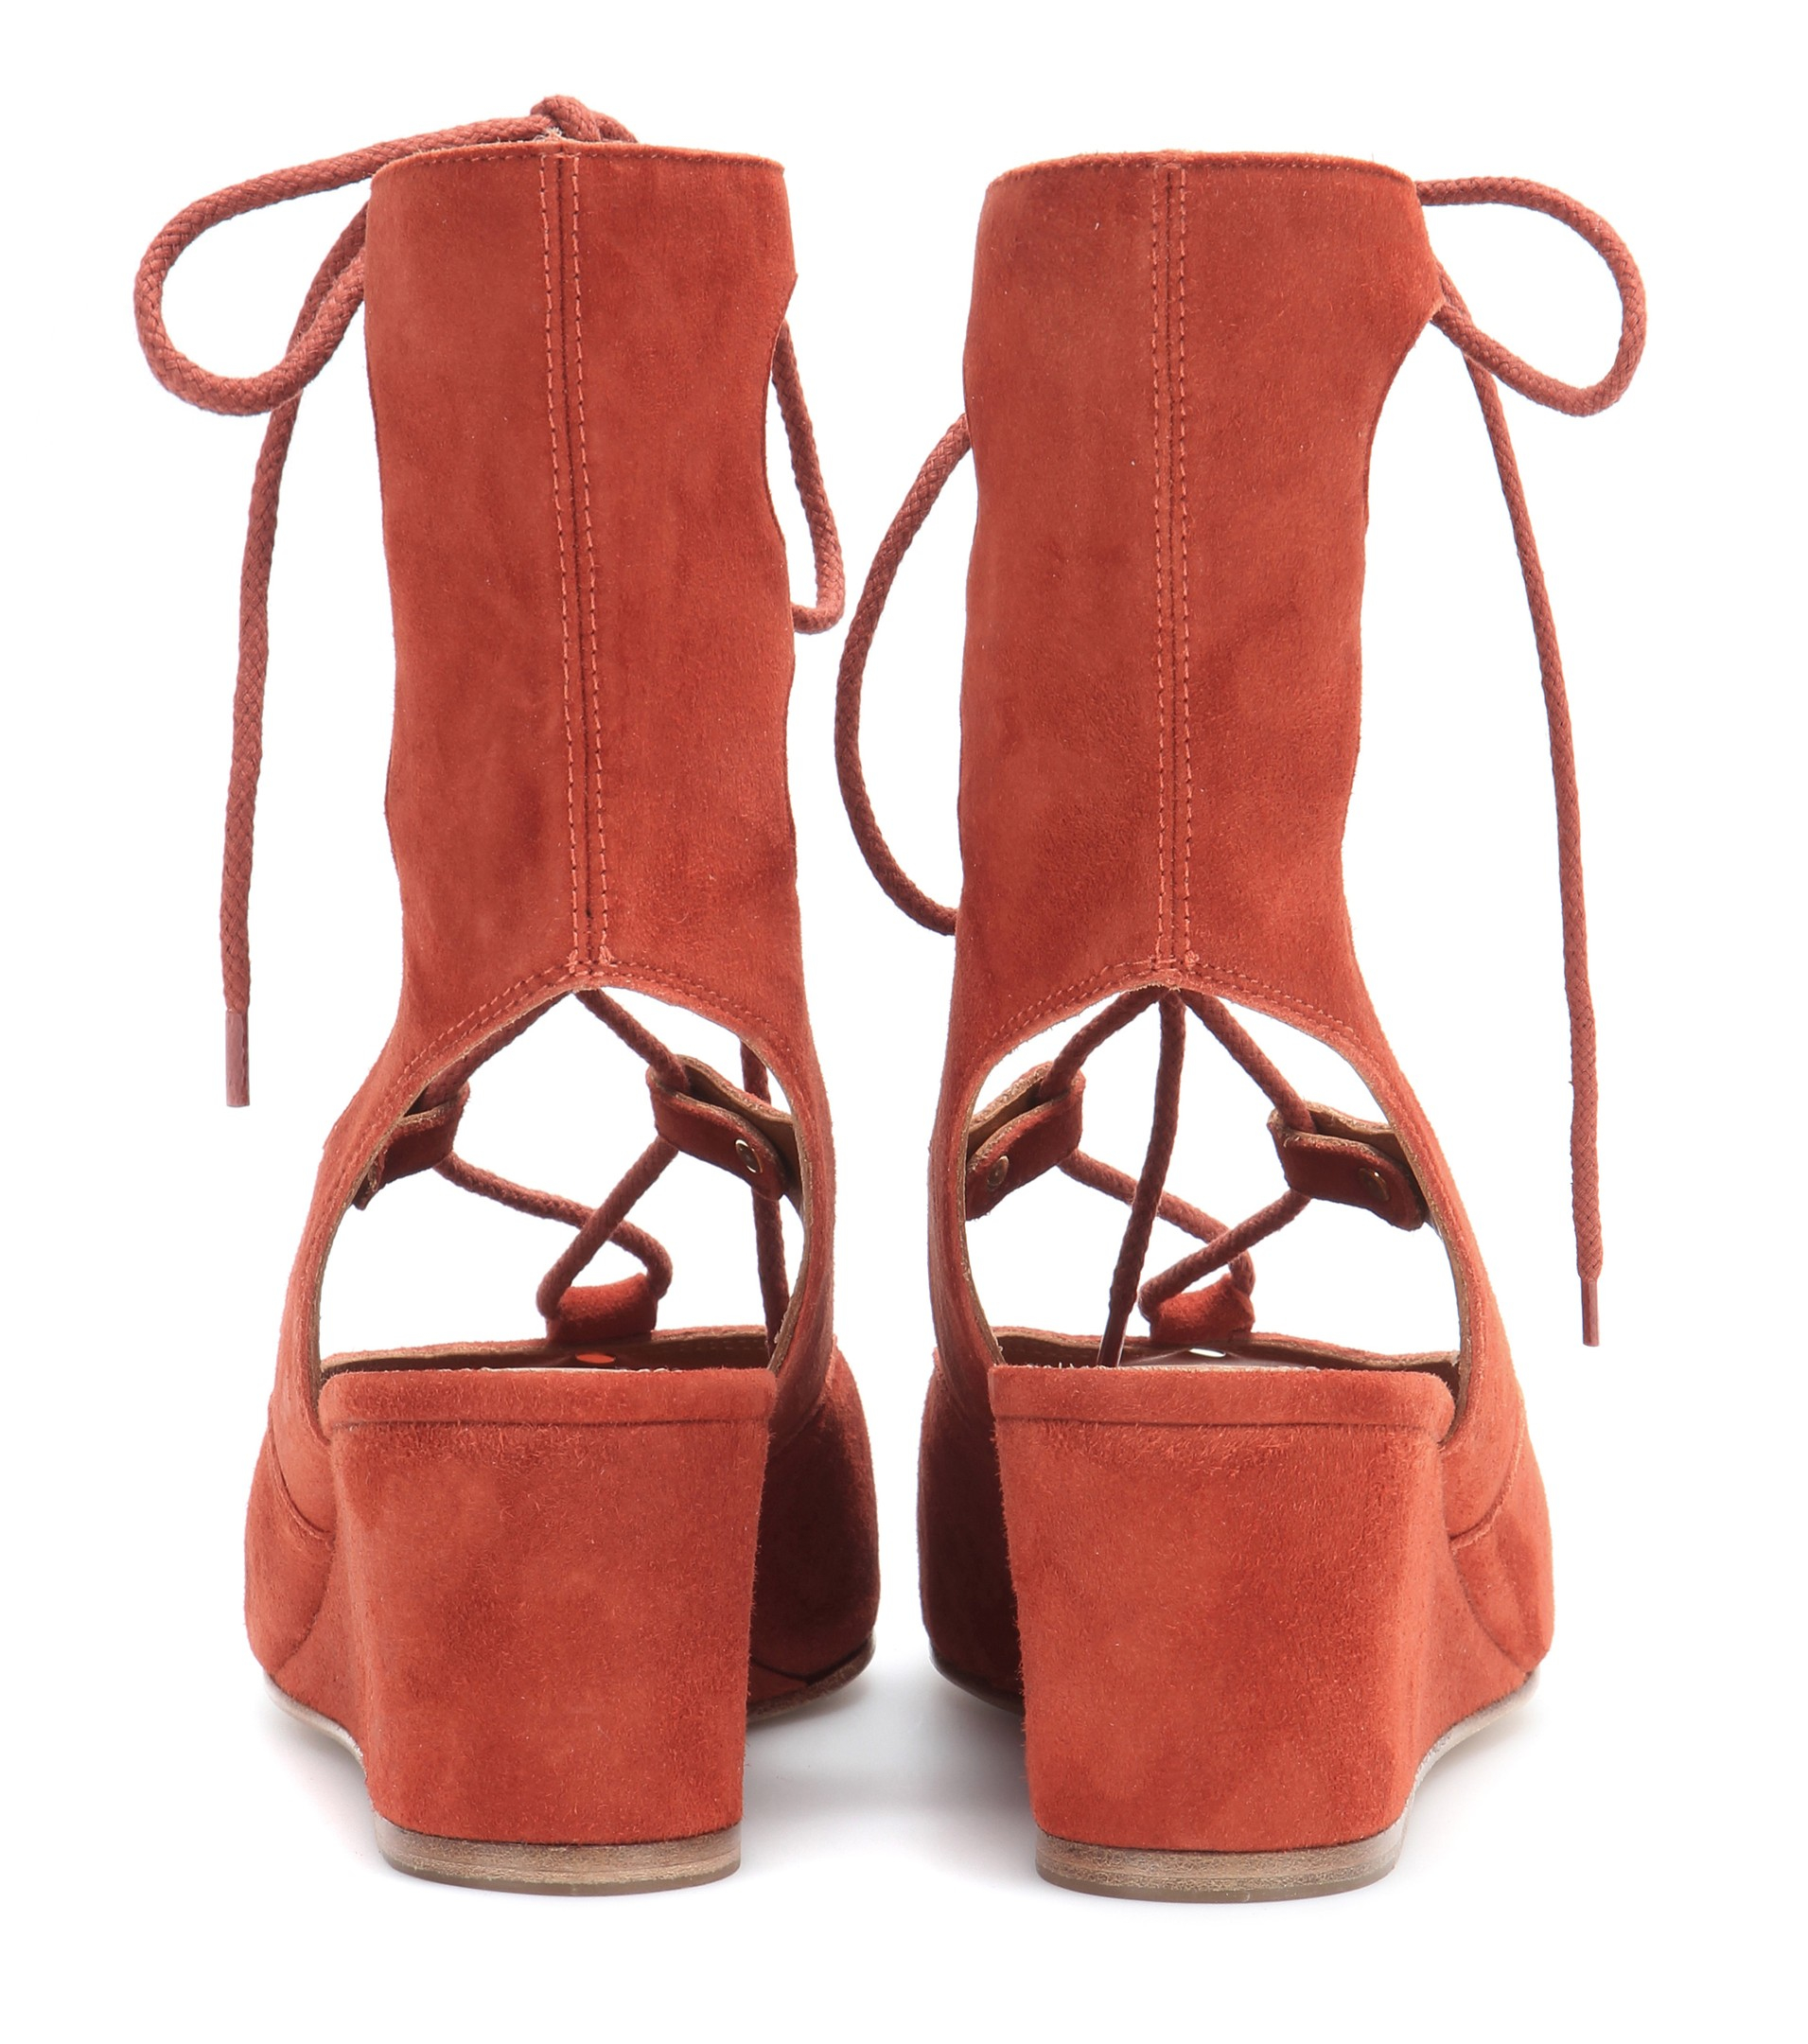 738a4b9e934 Chloé Suede Gladiator Sandals in Brown - Lyst